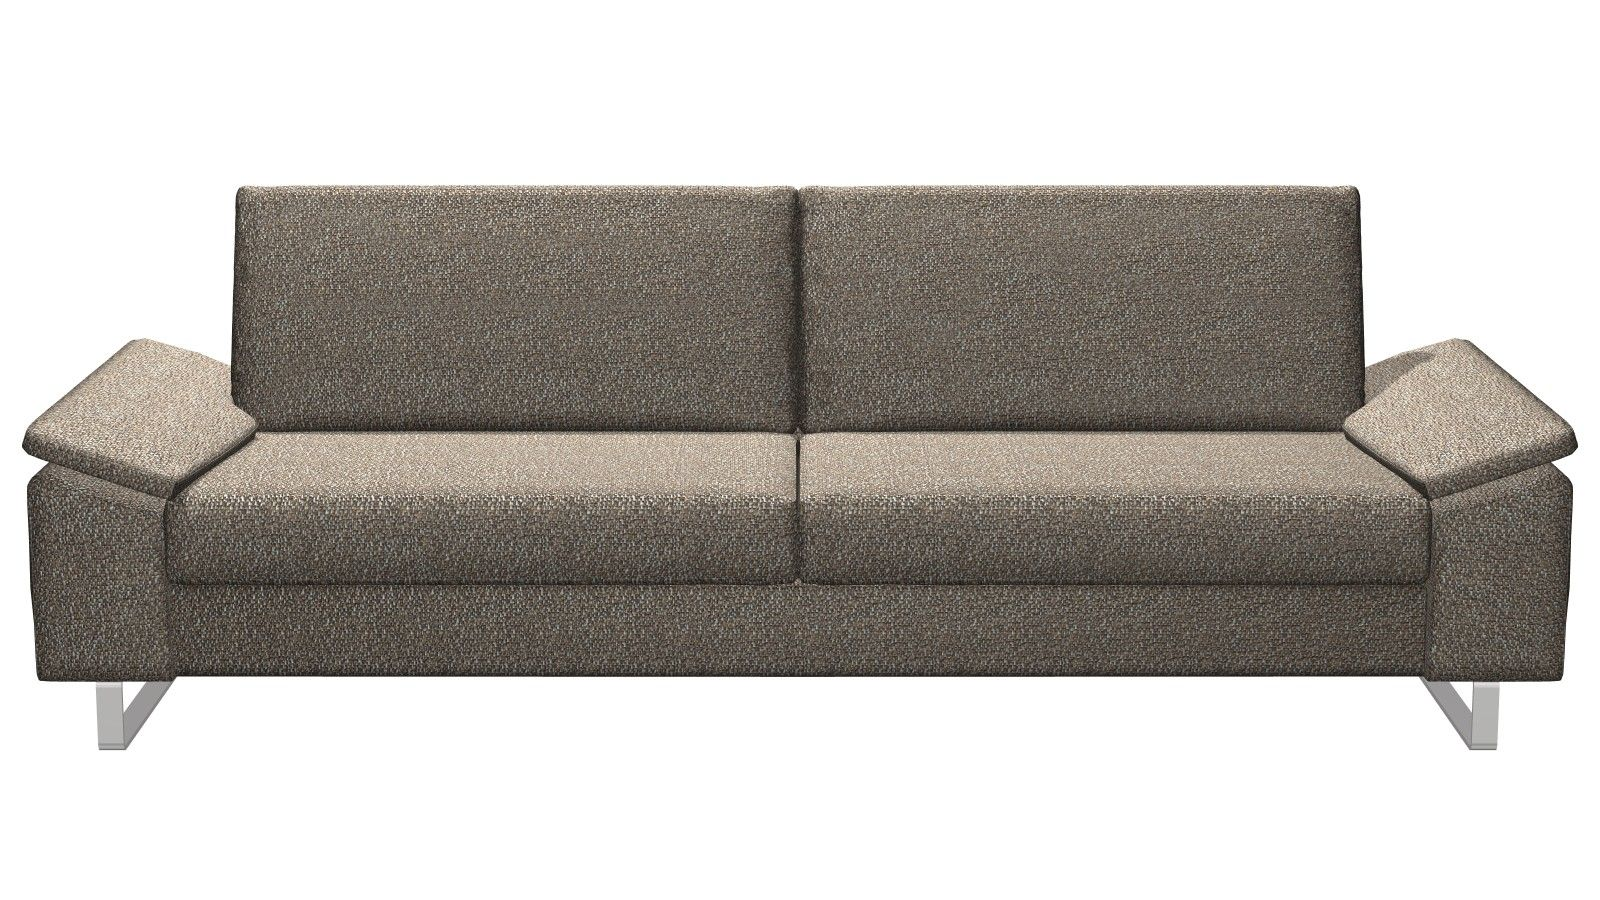 Boconcept sofa indivi2,brown congo fabric